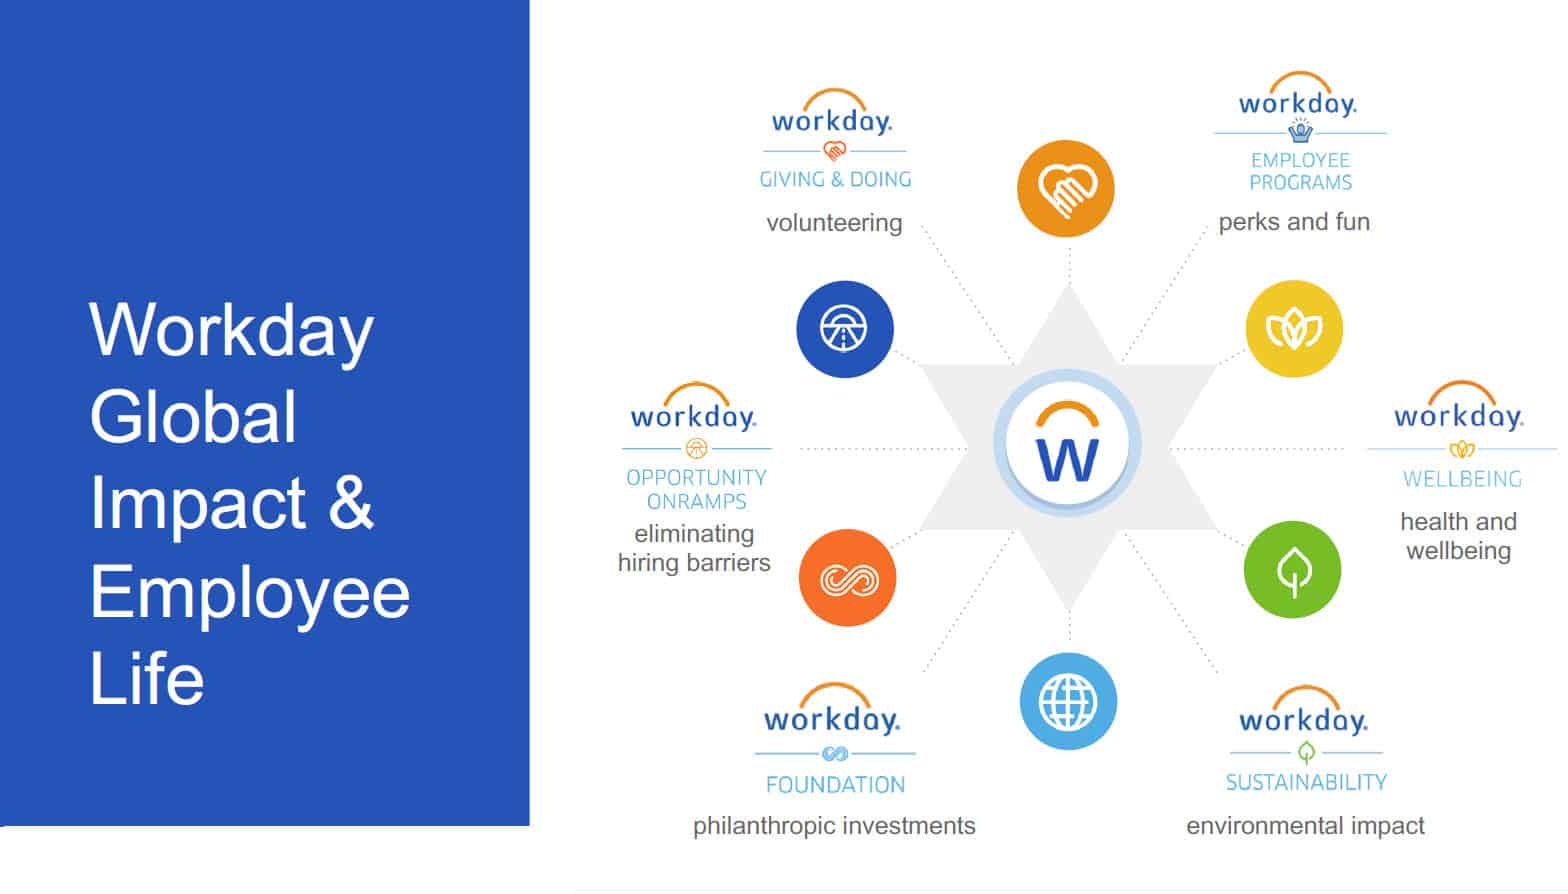 workday employee experience